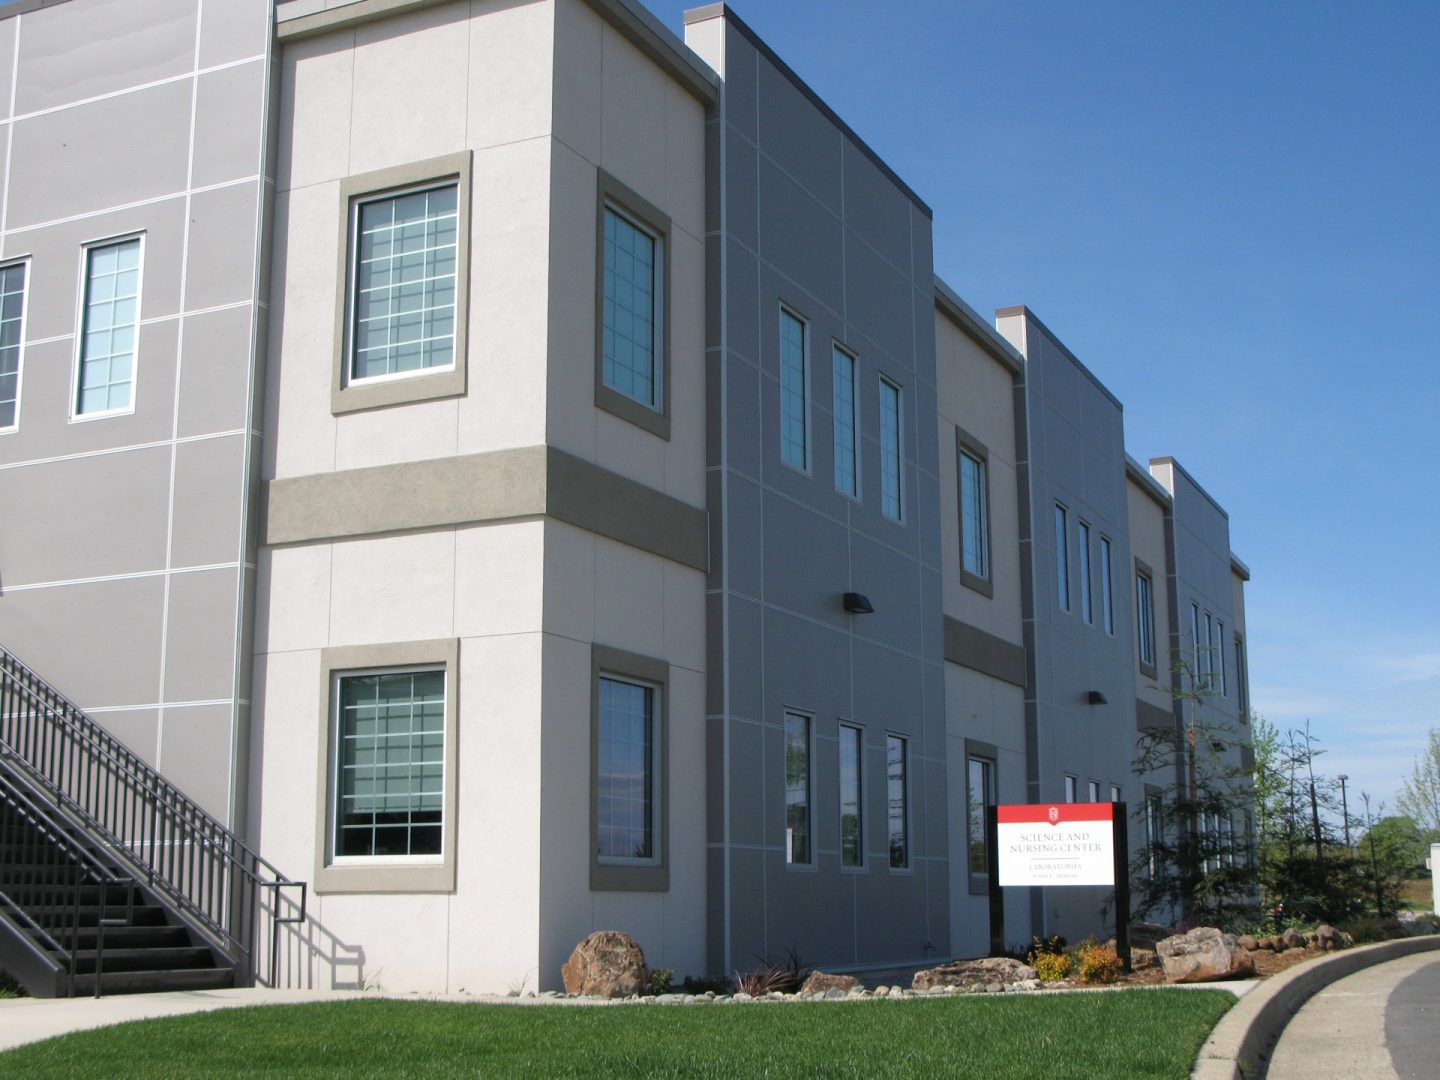 Schools and Churches - Simpson University Science Building